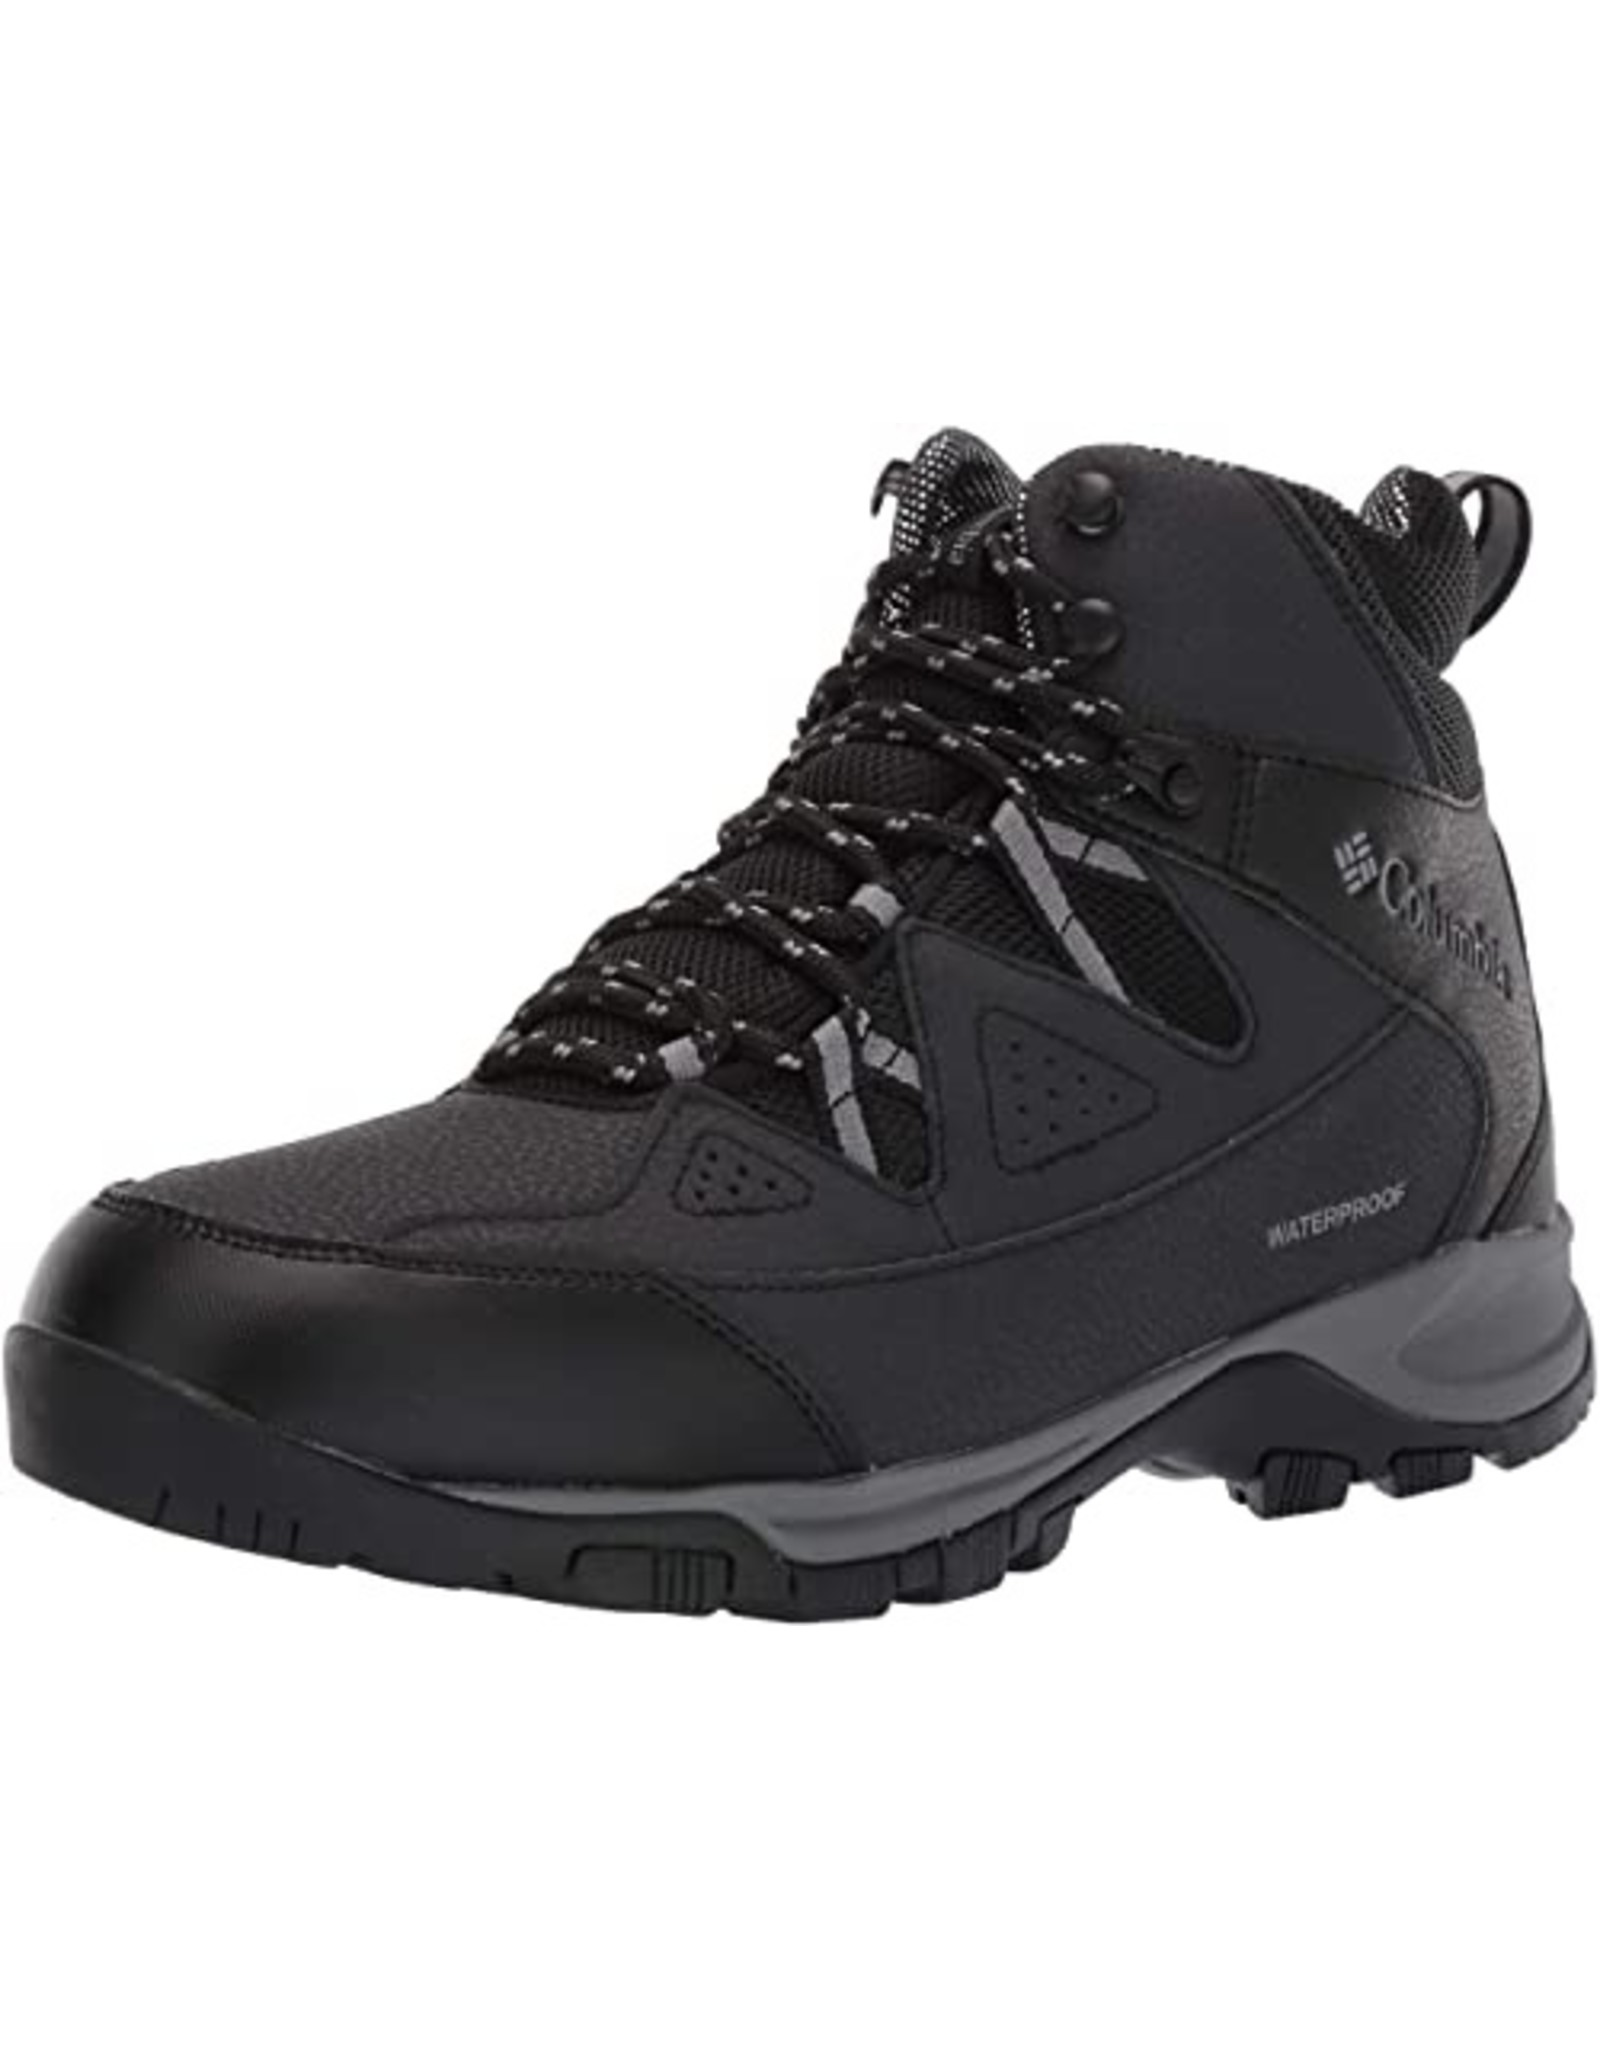 COLUMBIA SPORTSWEAR LIFTOP III WIDE BOOT